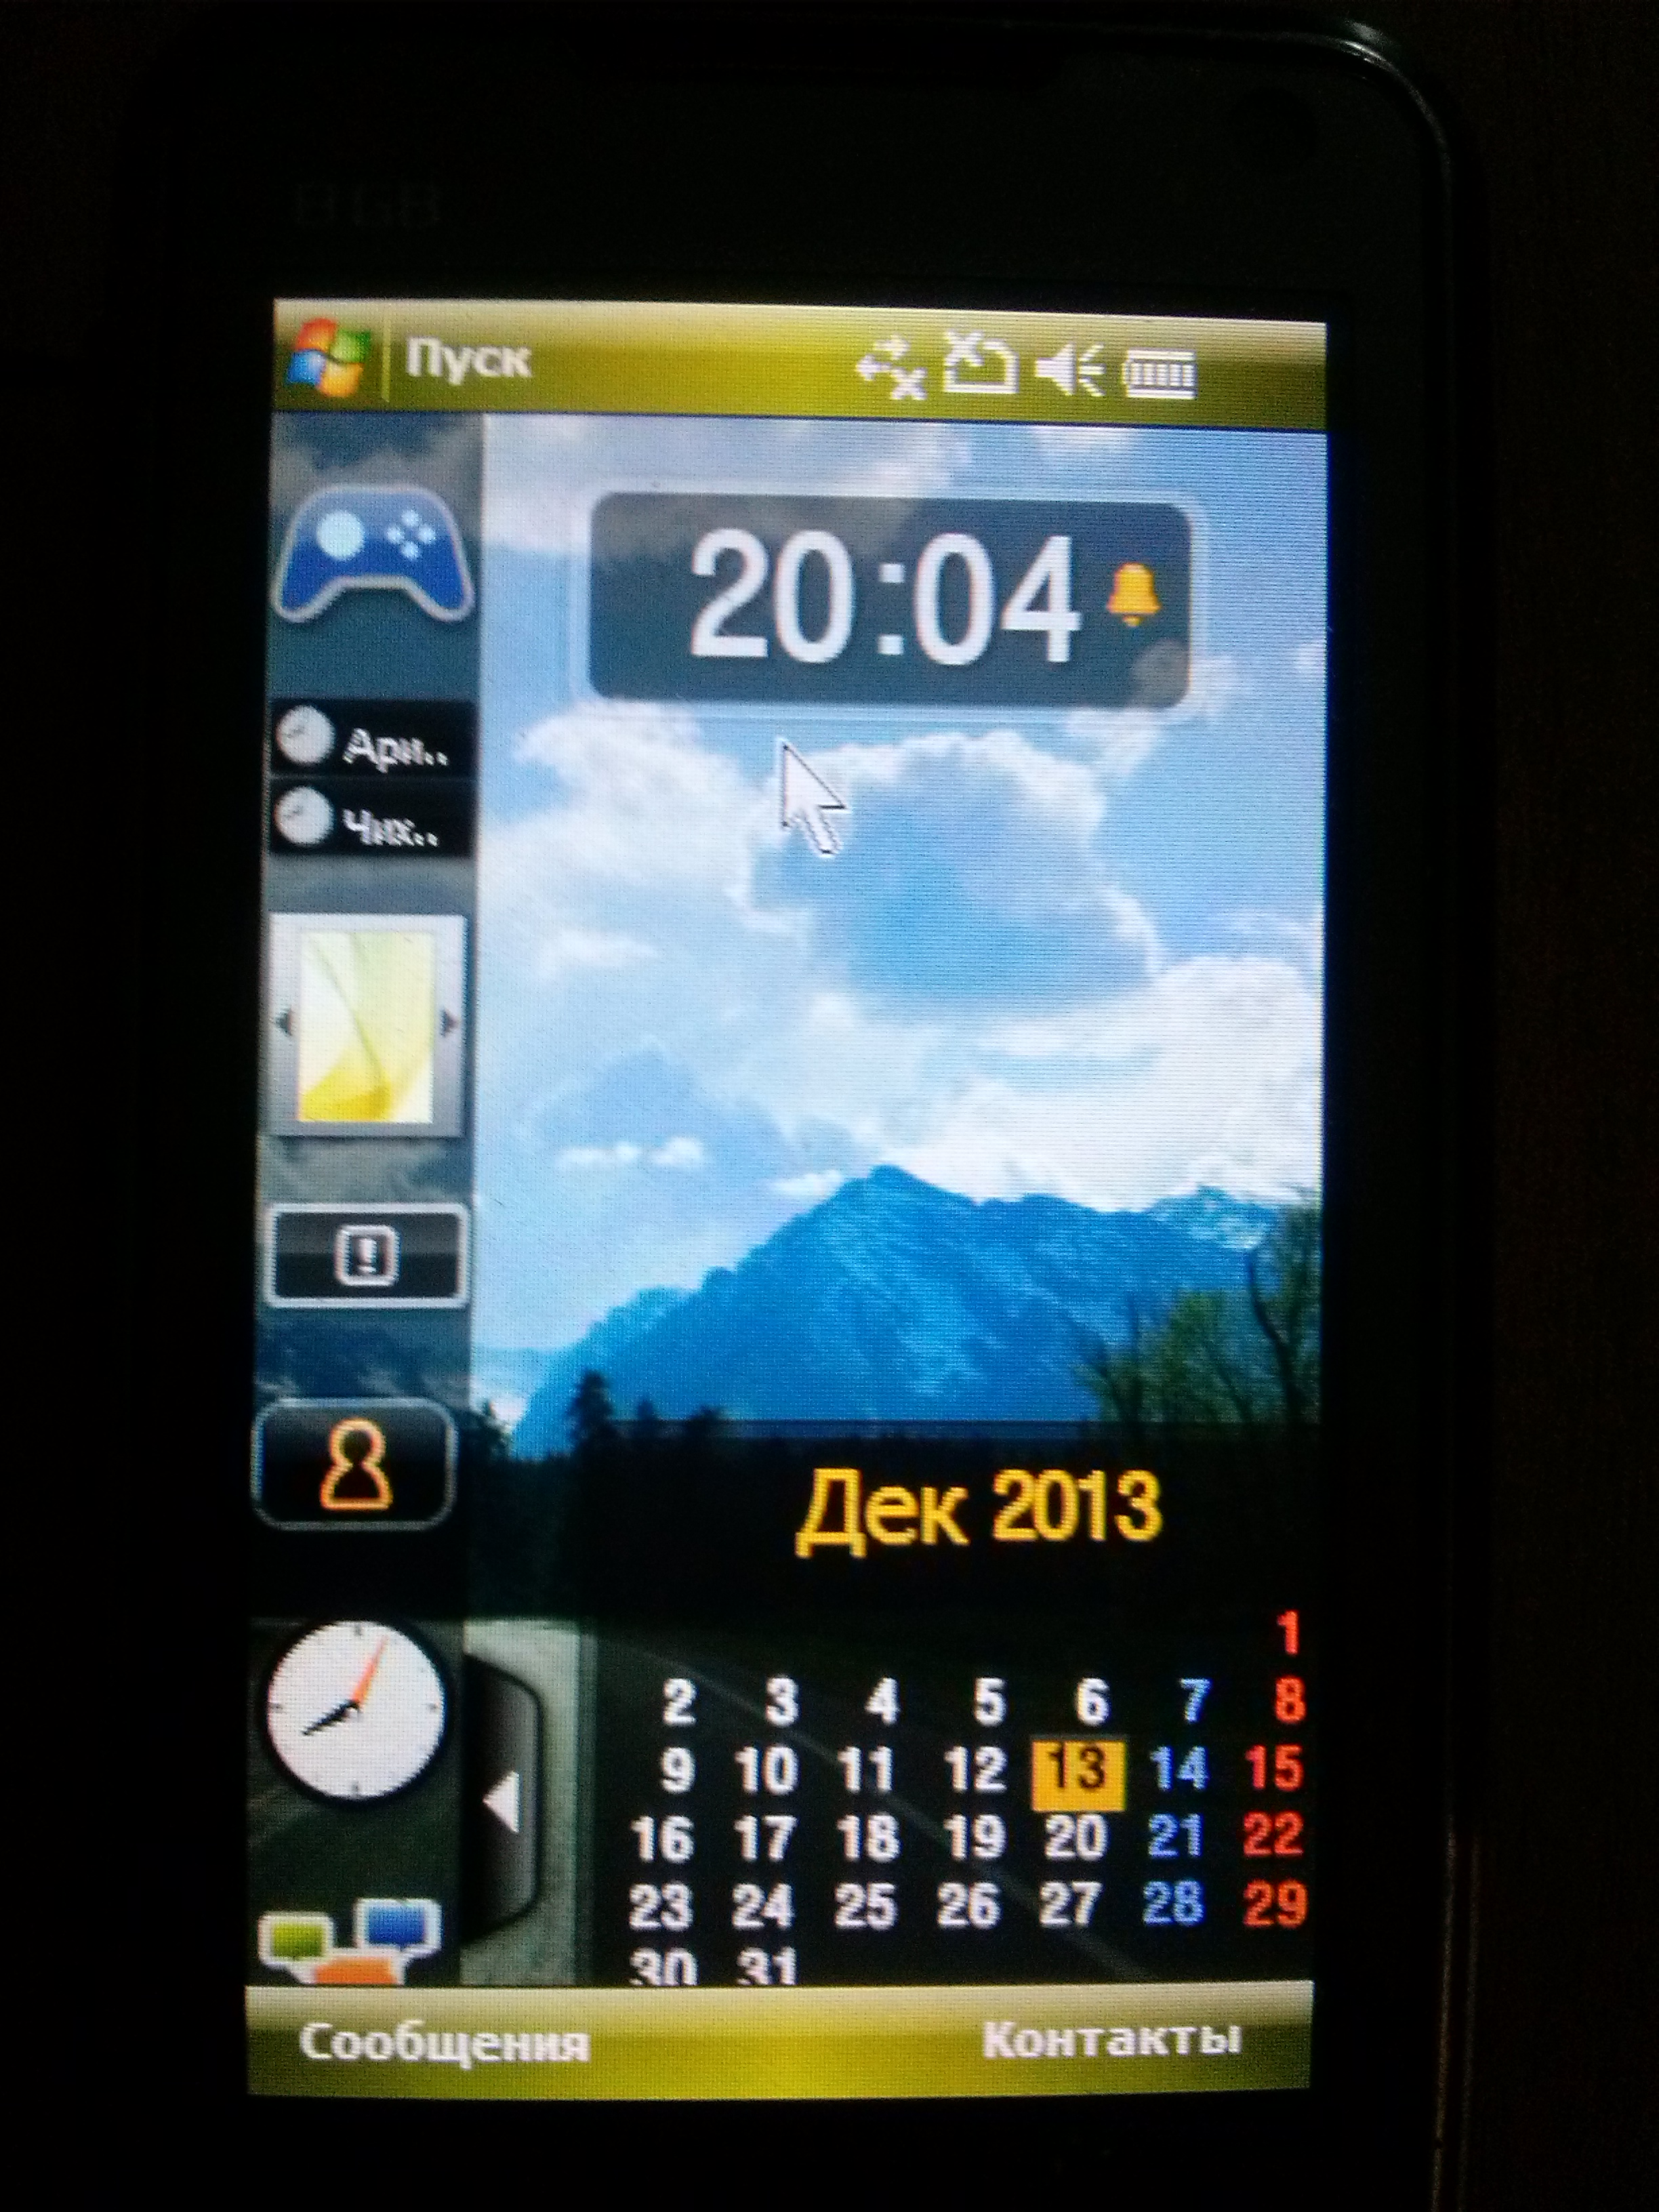 Download themes for sgh i900 omnia